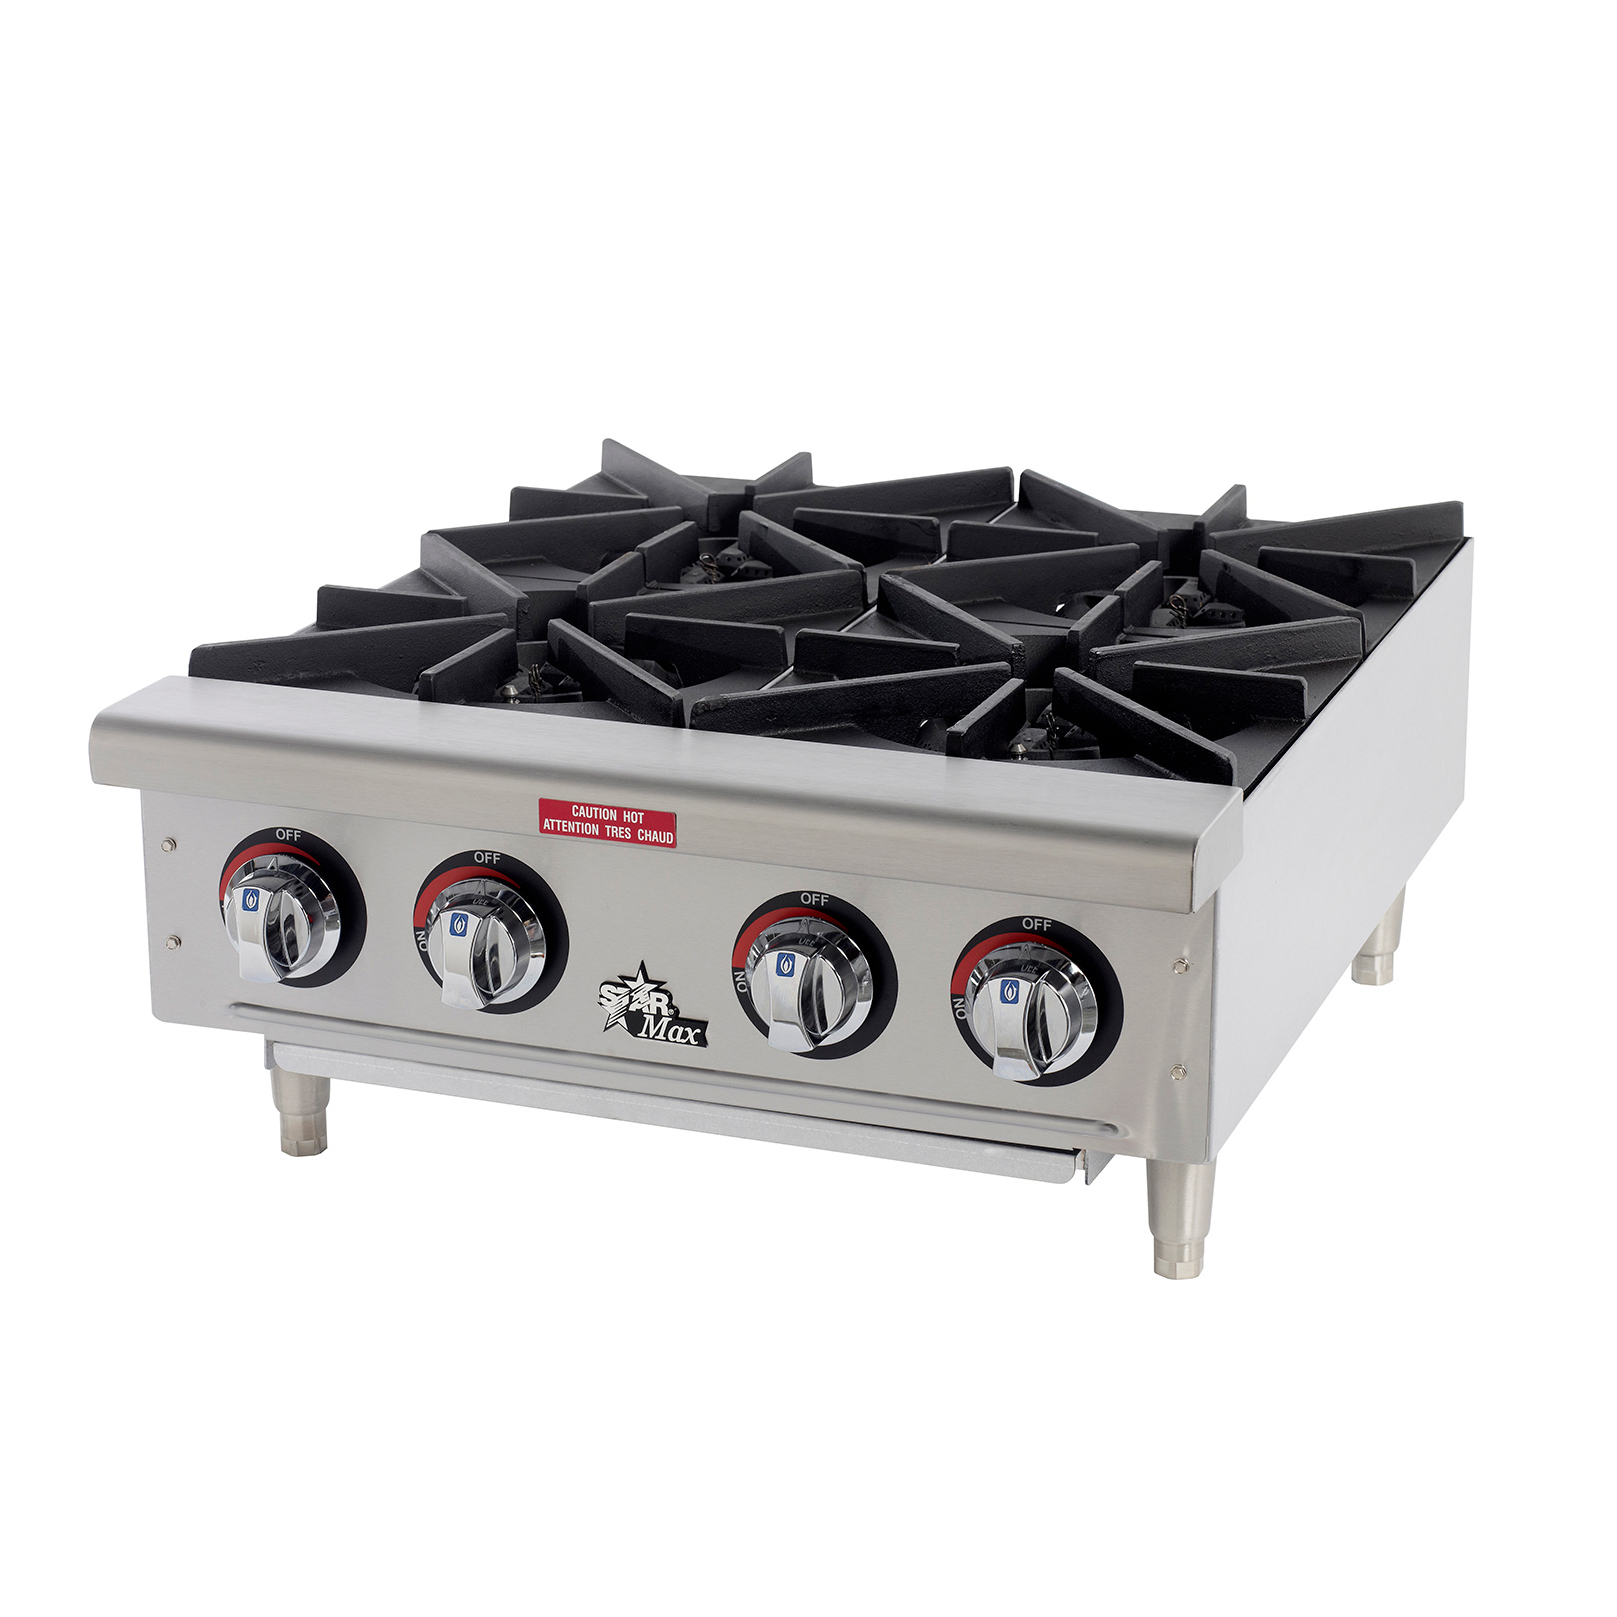 Star 604HF hotplate, countertop, gas